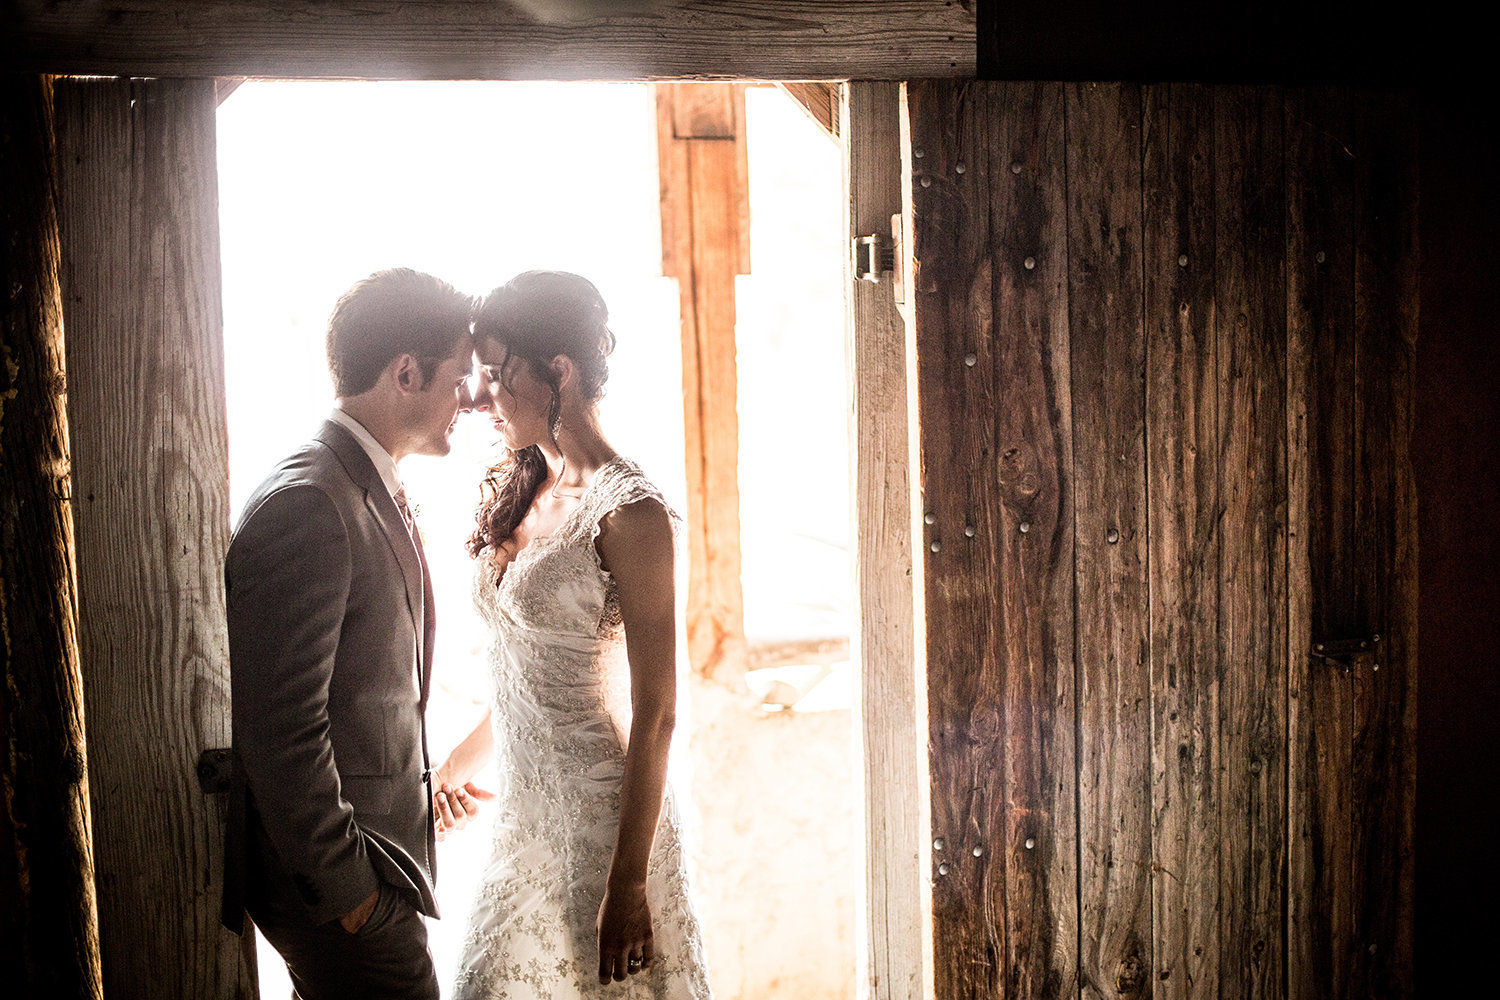 Mt Woodson wedding photos rustic barn romantic